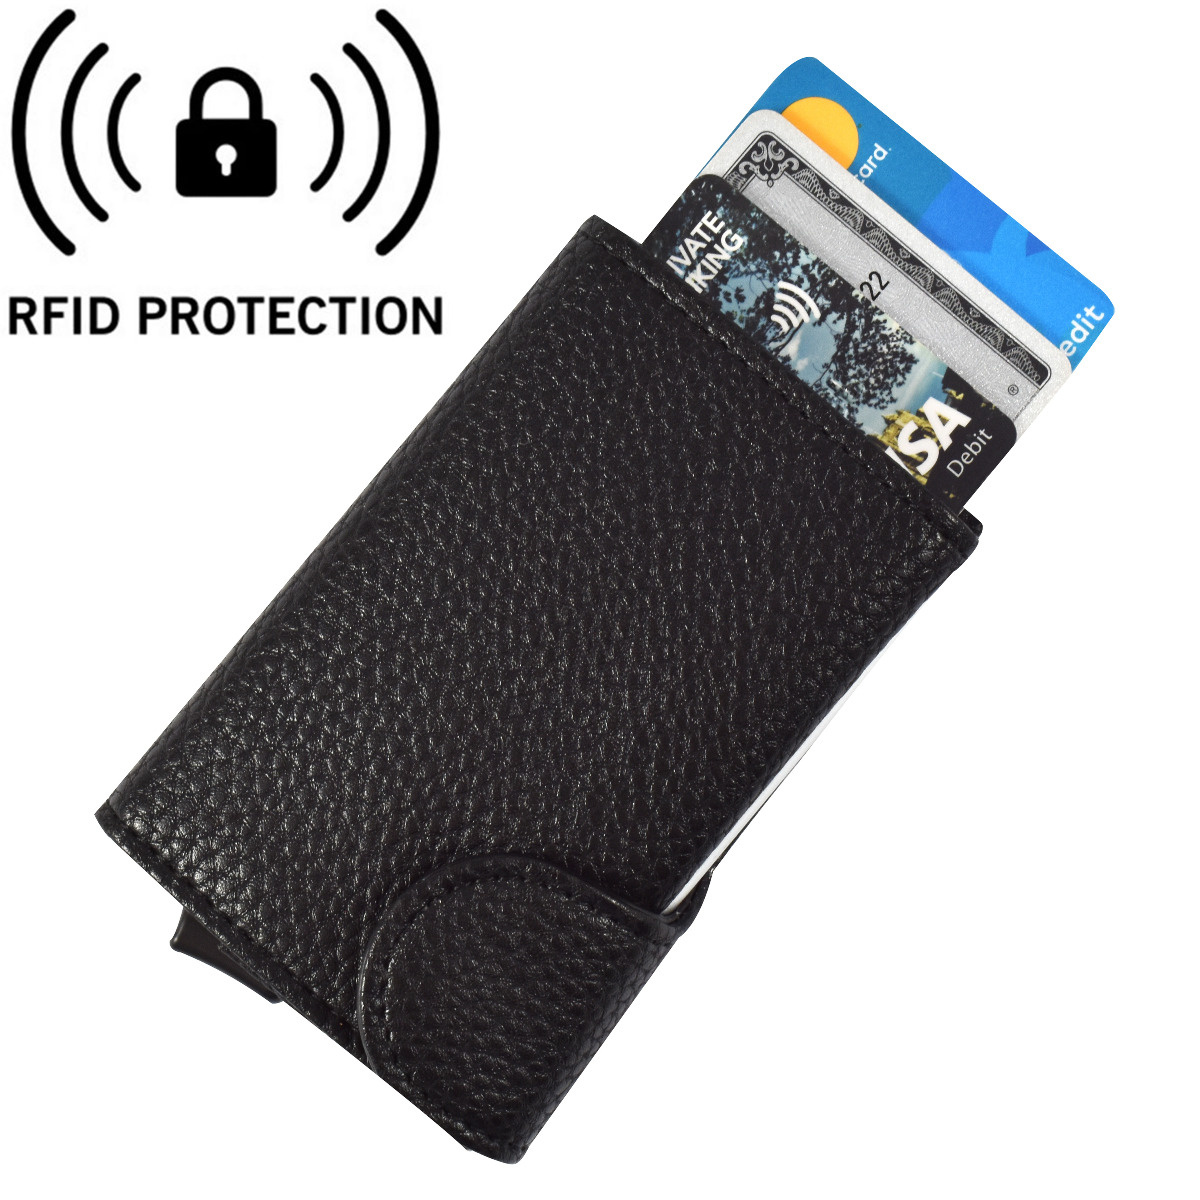 Bee-Secure Black Cardprotector and Wallet - RFID